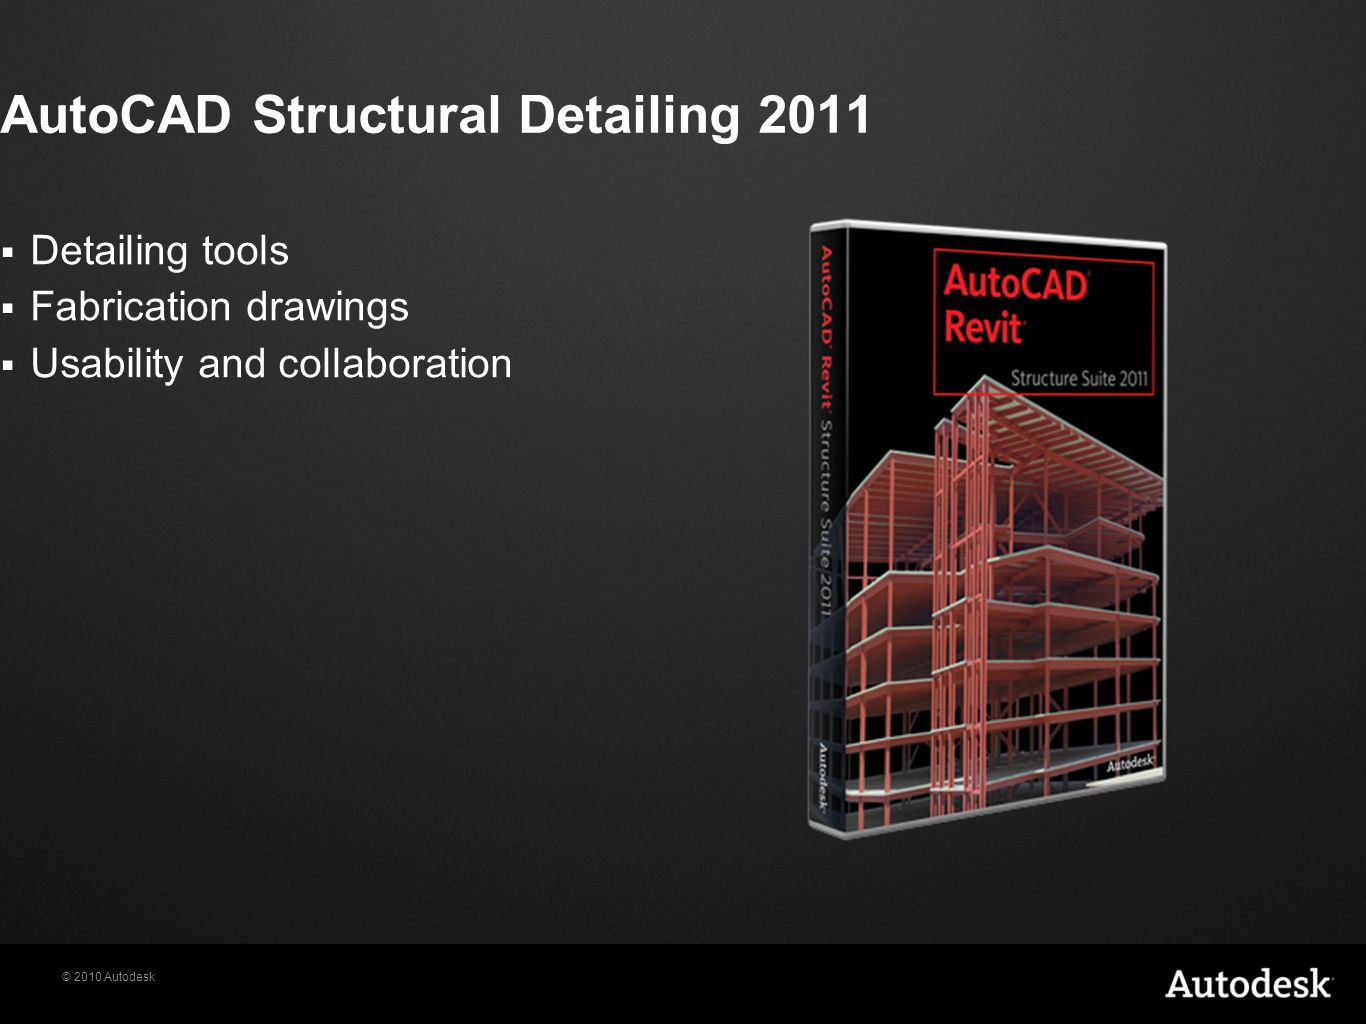 © 2010 Autodesk AutoCAD Structural Detailing 2011  Detailing tools  Fabrication drawings  Usability and collaboration